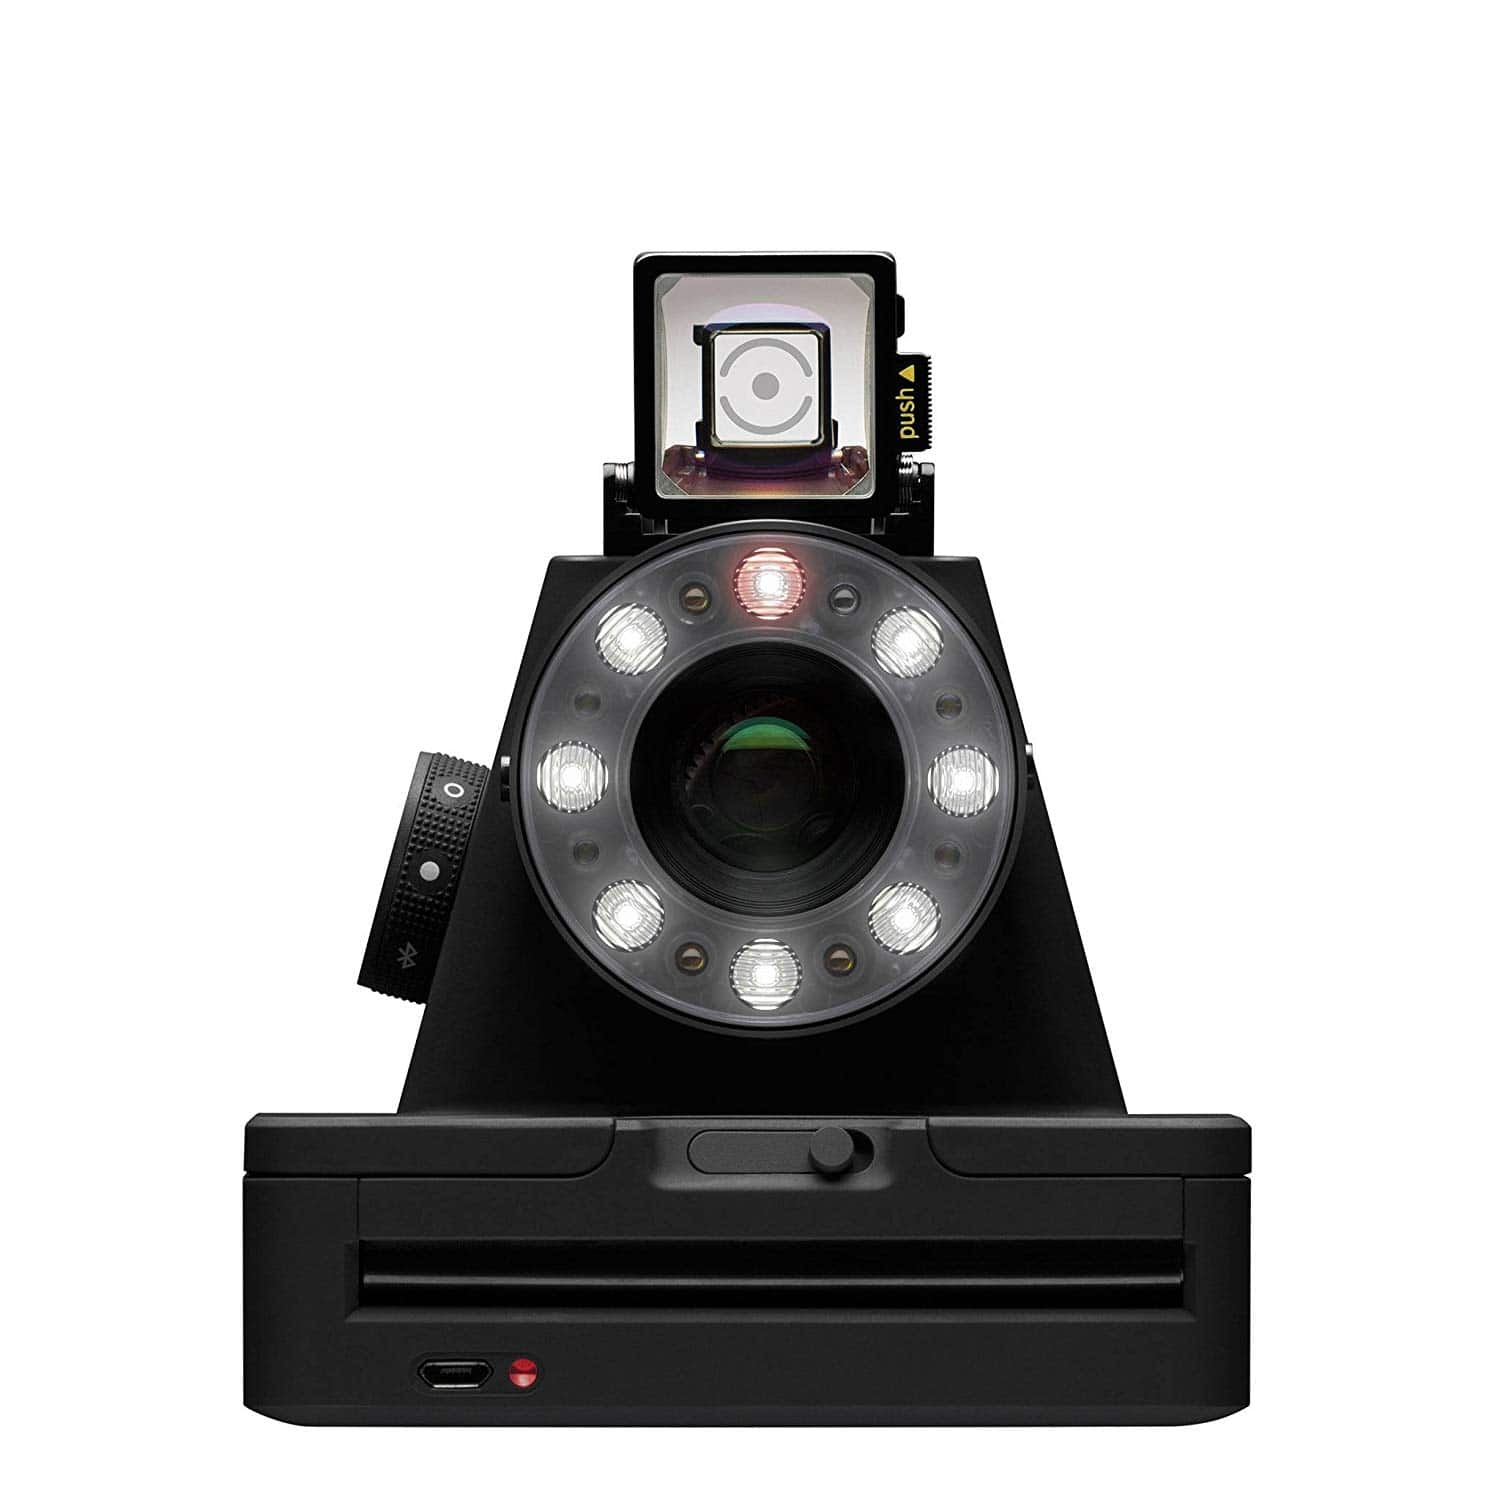 Impossible Project I-1 Analog Instant Camera, $38.72 from 3rd party seller @ Amazon